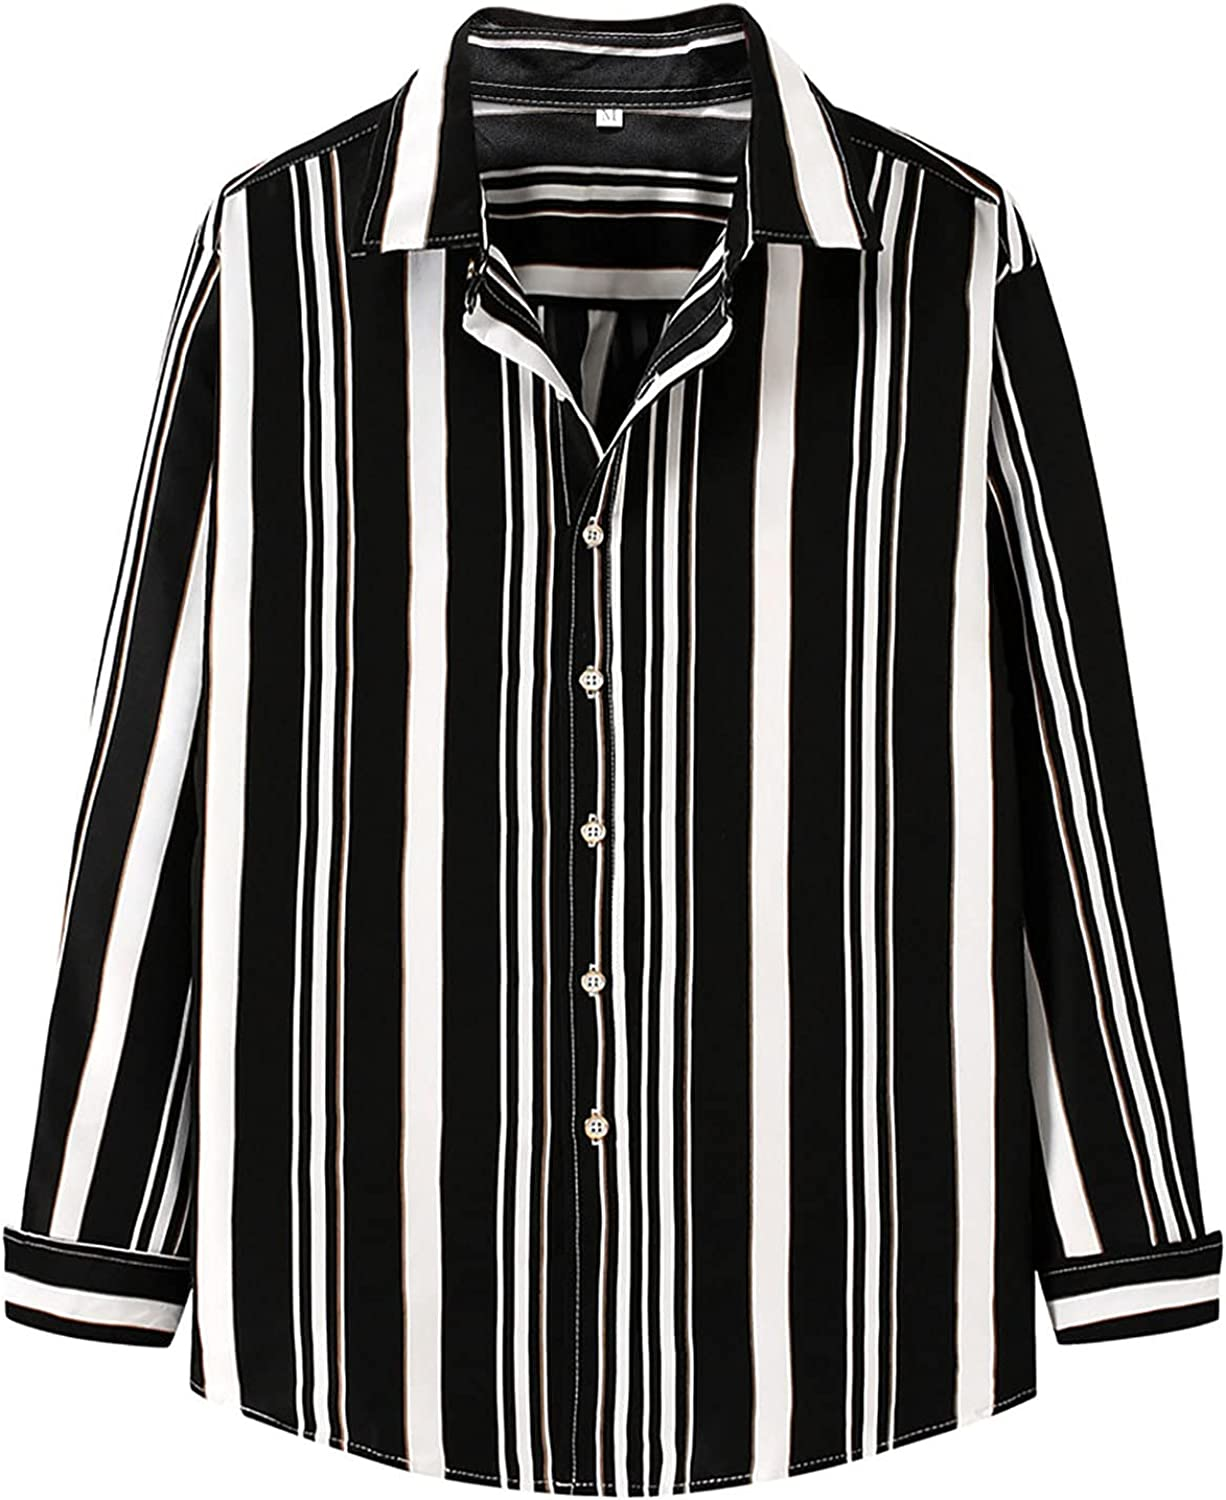 UBST Striped Shirts for Mens, 2021 Fall Button Down Long Sleeve Lapel Collar Loose Tops Office Business Casual Shirt